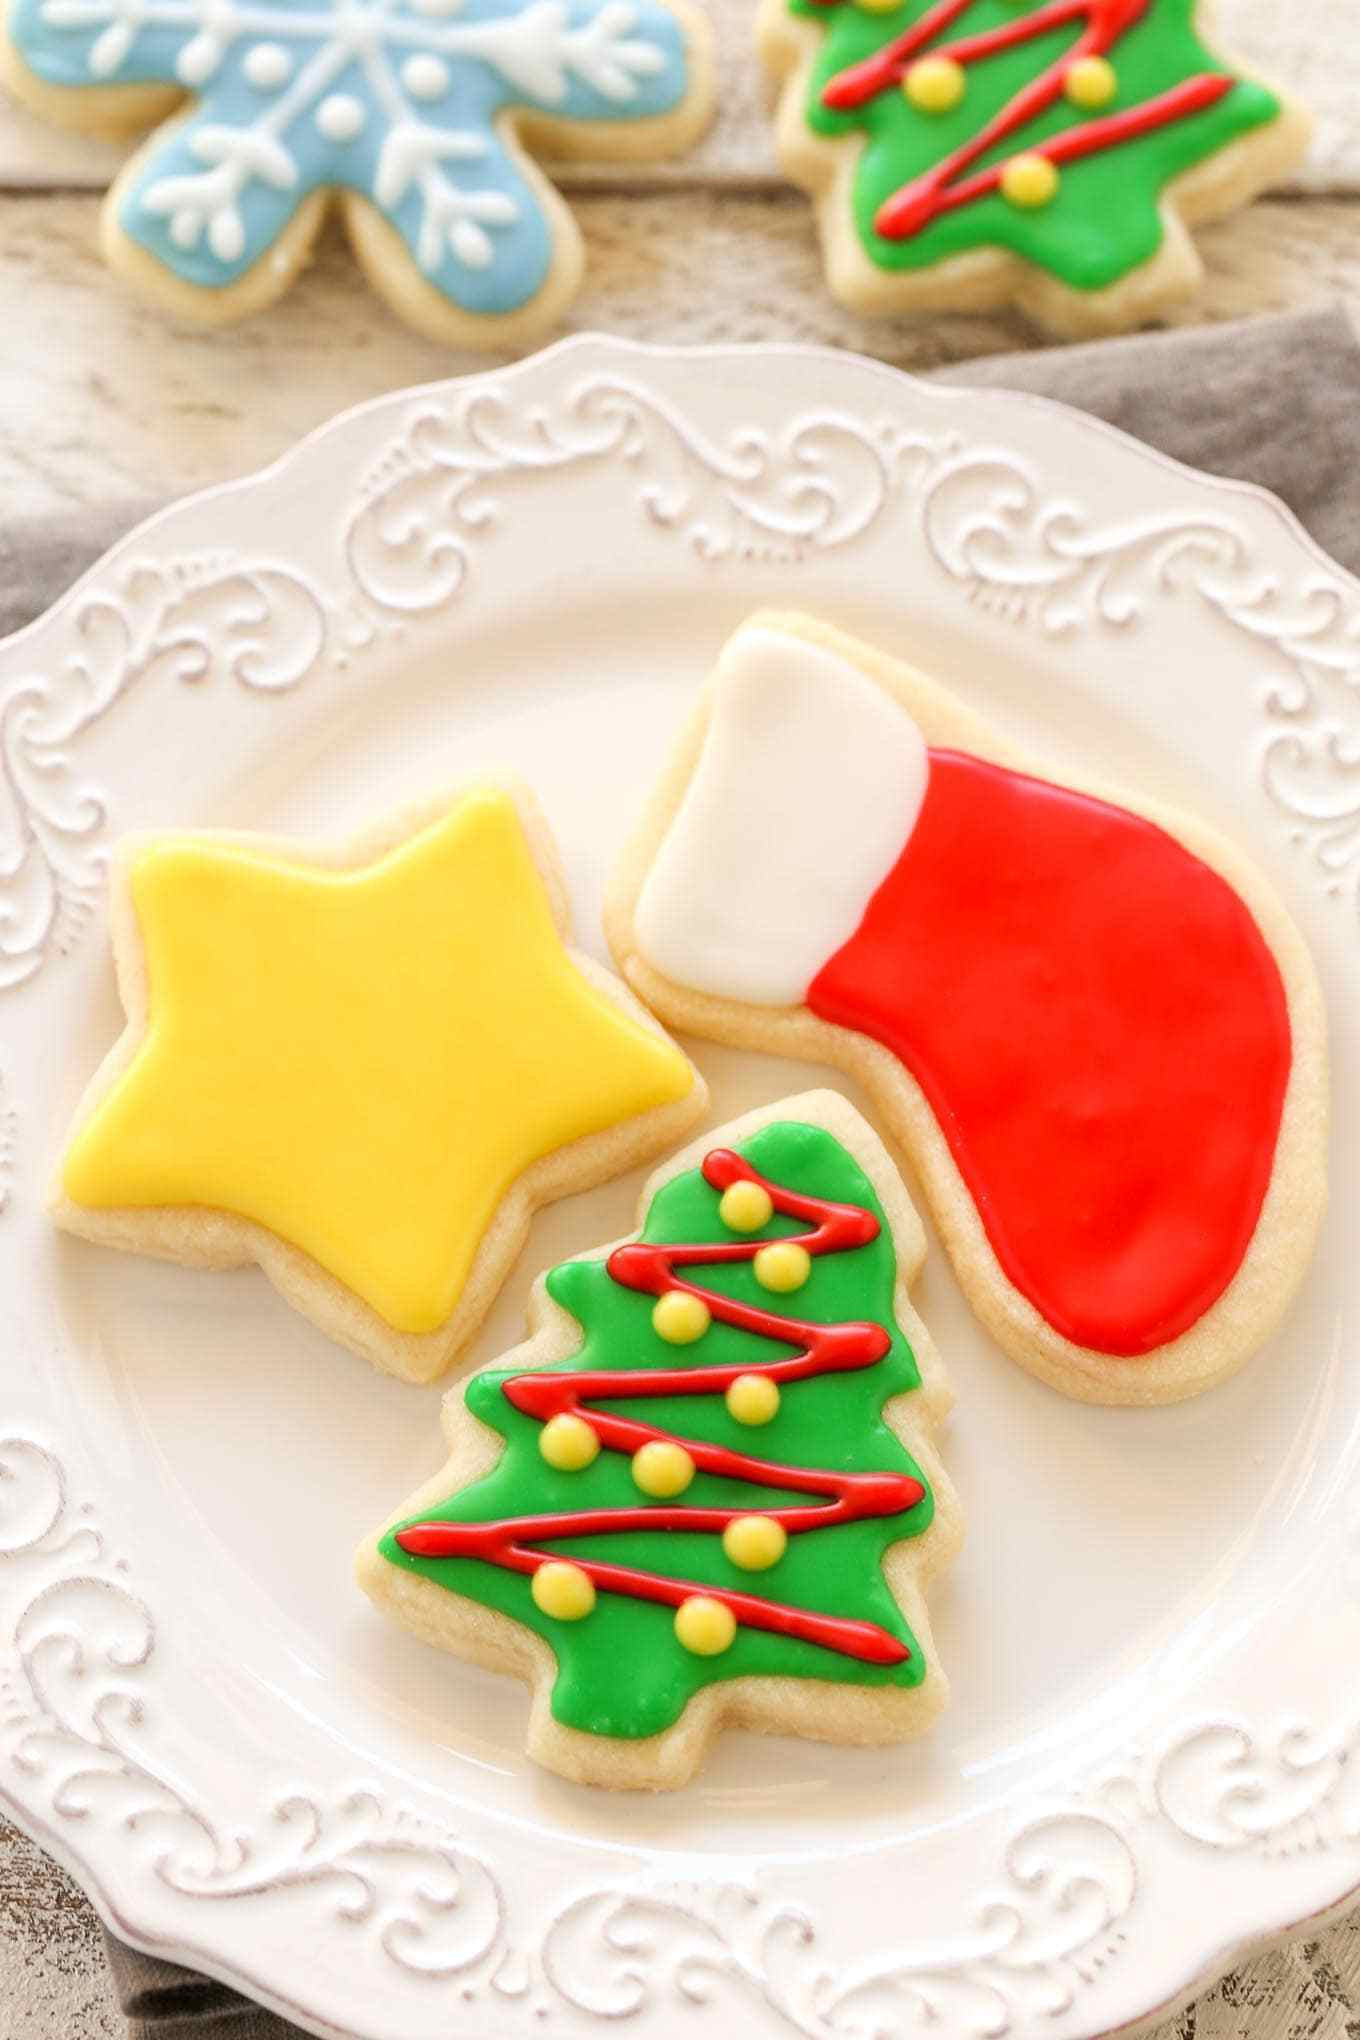 Christmas Sugar Cookie Icing Recipe  Soft Christmas Cut Out Sugar Cookies Live Well Bake ten